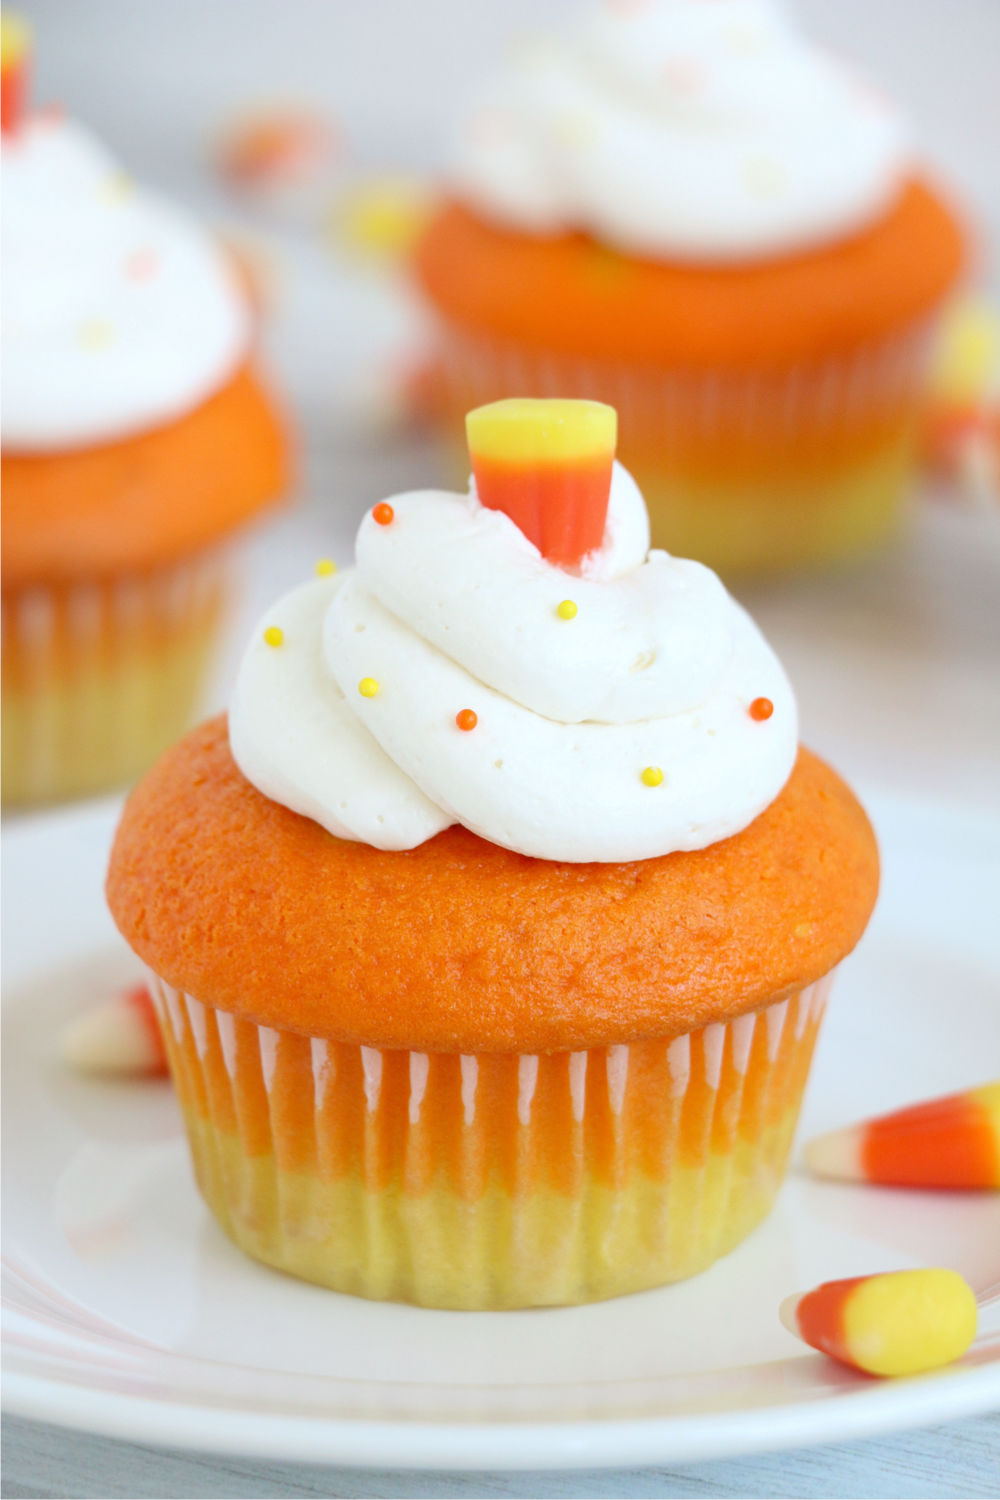 Candy corn cupcakes with candy corn on top